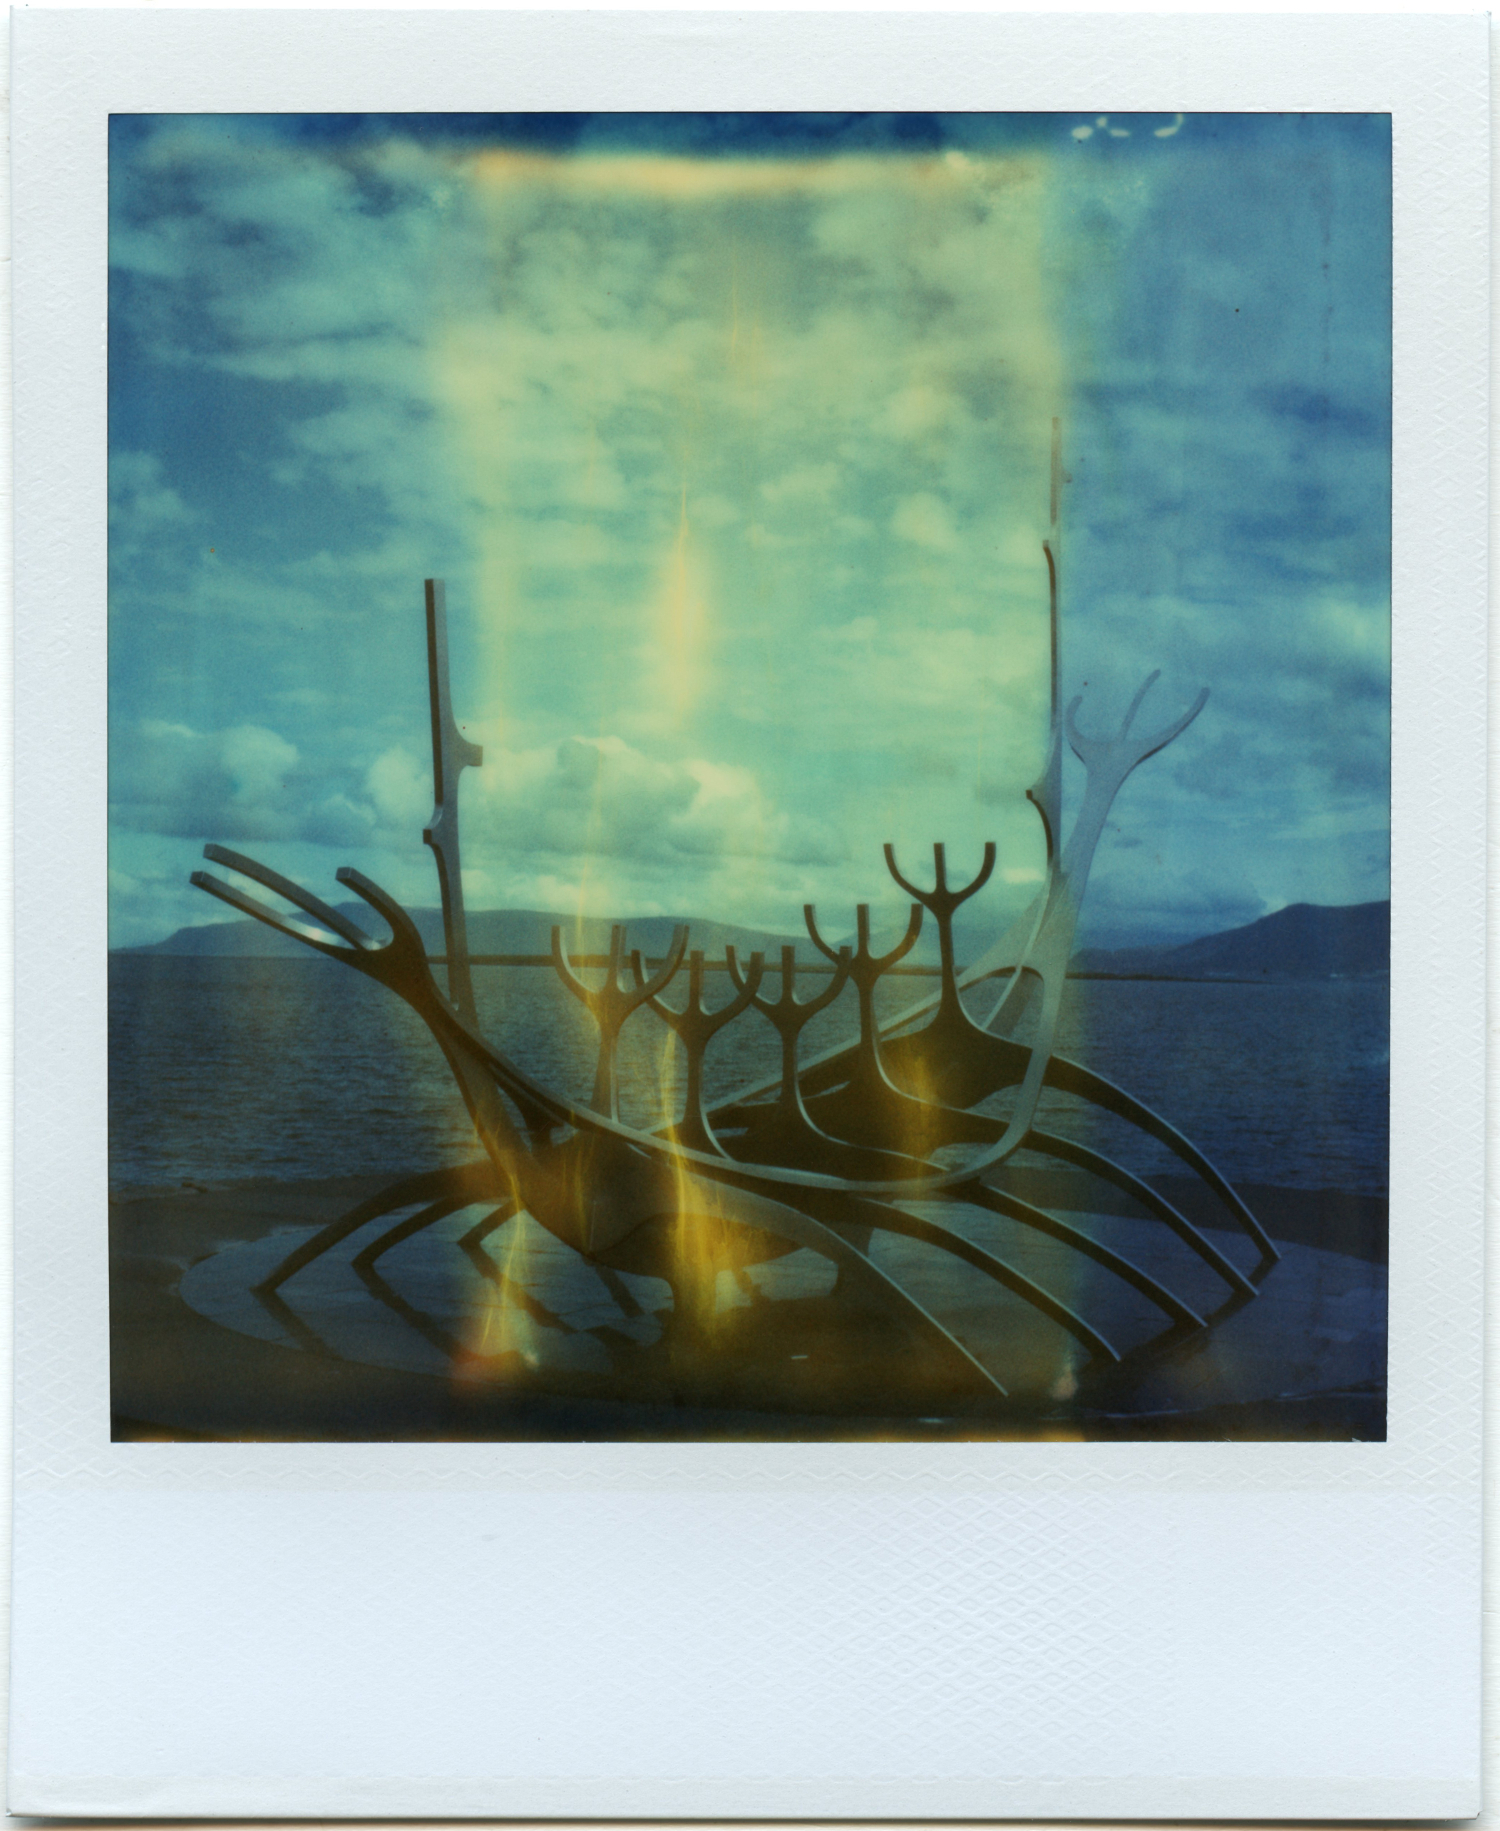 """Sólfar"" - Expired Polaroid Time Zero Film - 2018"